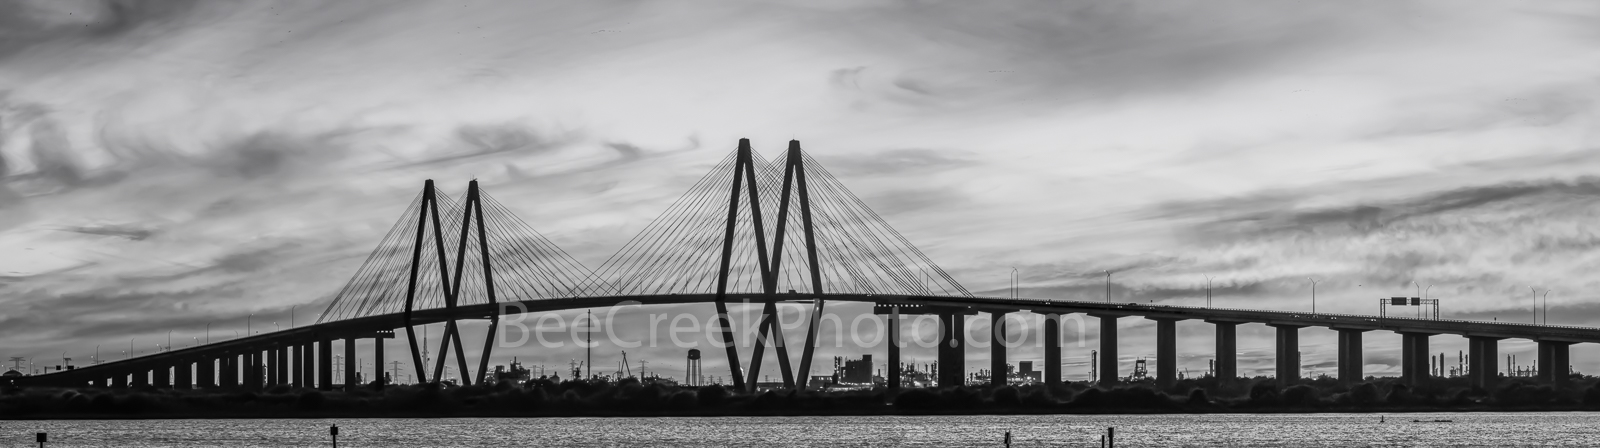 Houston, Baytown, La Porte, Texas, Fred Hartman Bridge,BW, black and white, cityscape, cityscapes, ship channel,landscape, landscape, architectural, architecture, bridge, pano, panorama,, photo